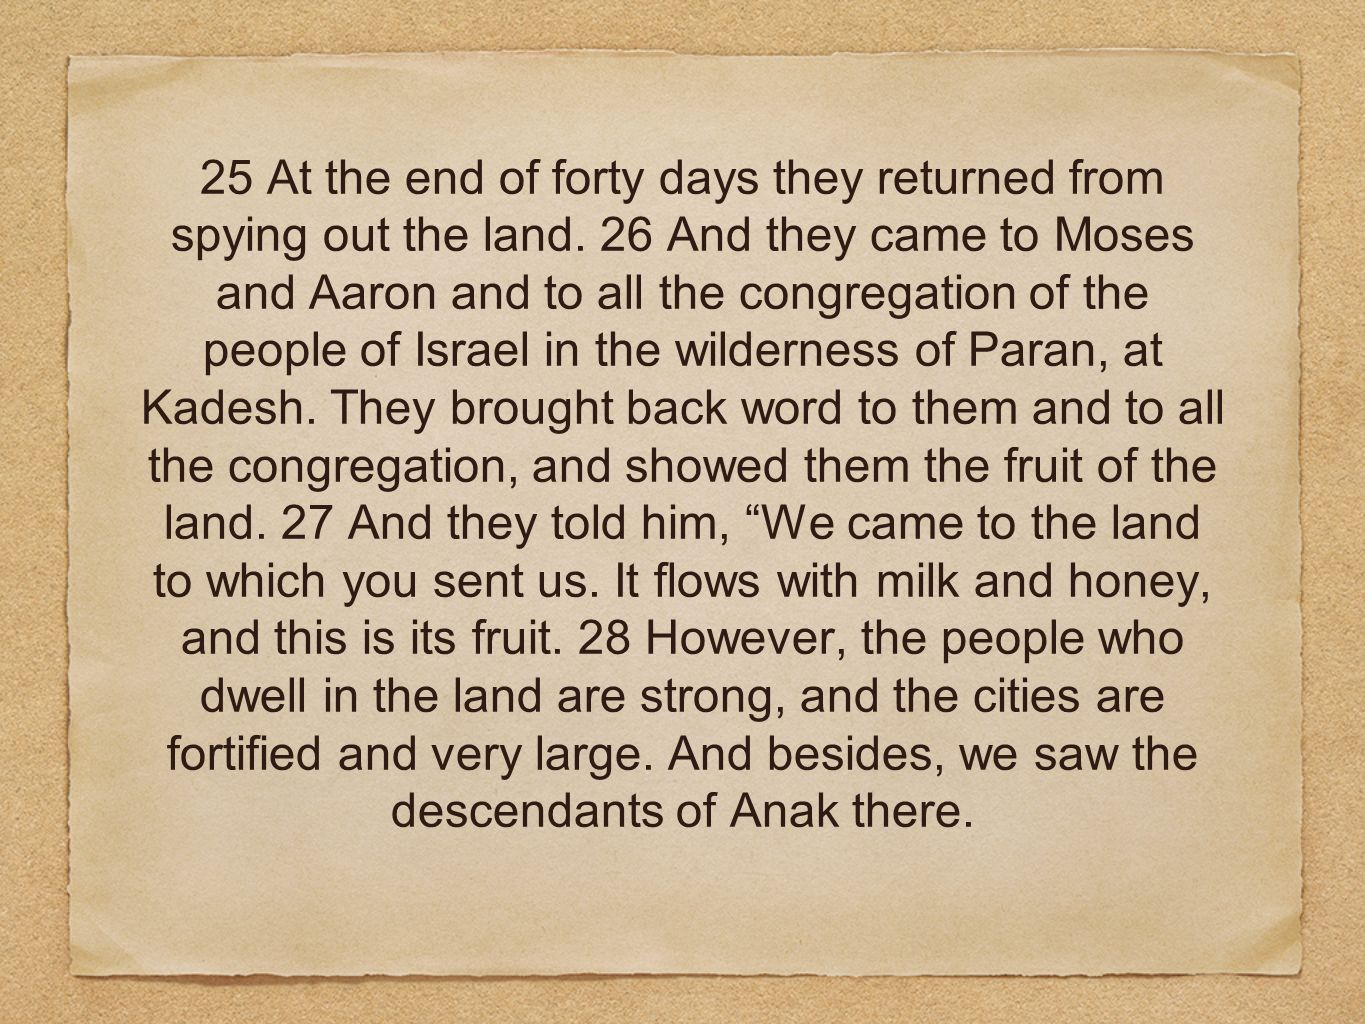 25 At the end of forty days they returned from spying out the land. 26 And they came to Moses and Aaron and to all the congregation of the people of I